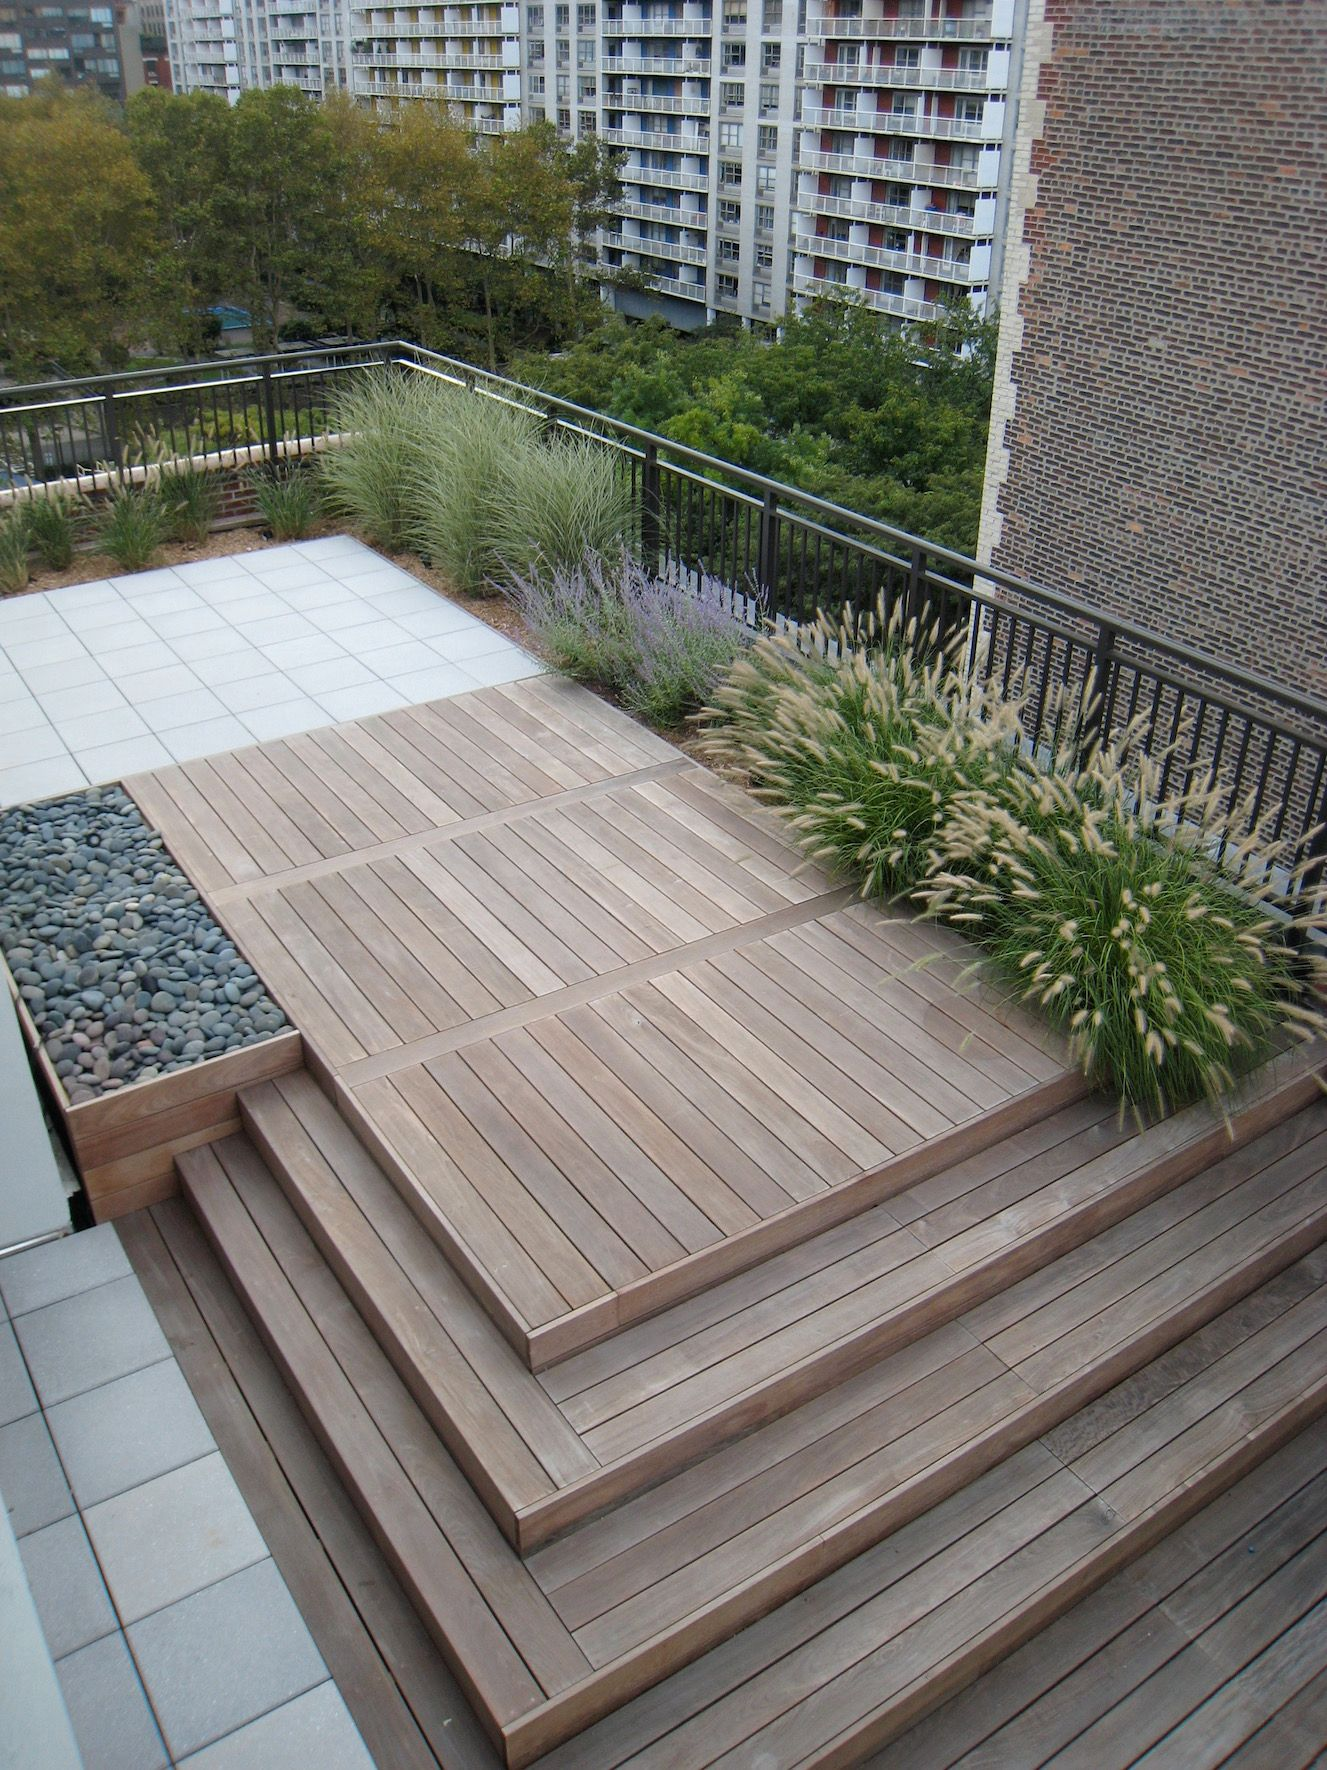 4 Gardens for 4 (NSEW) Clients - East Village